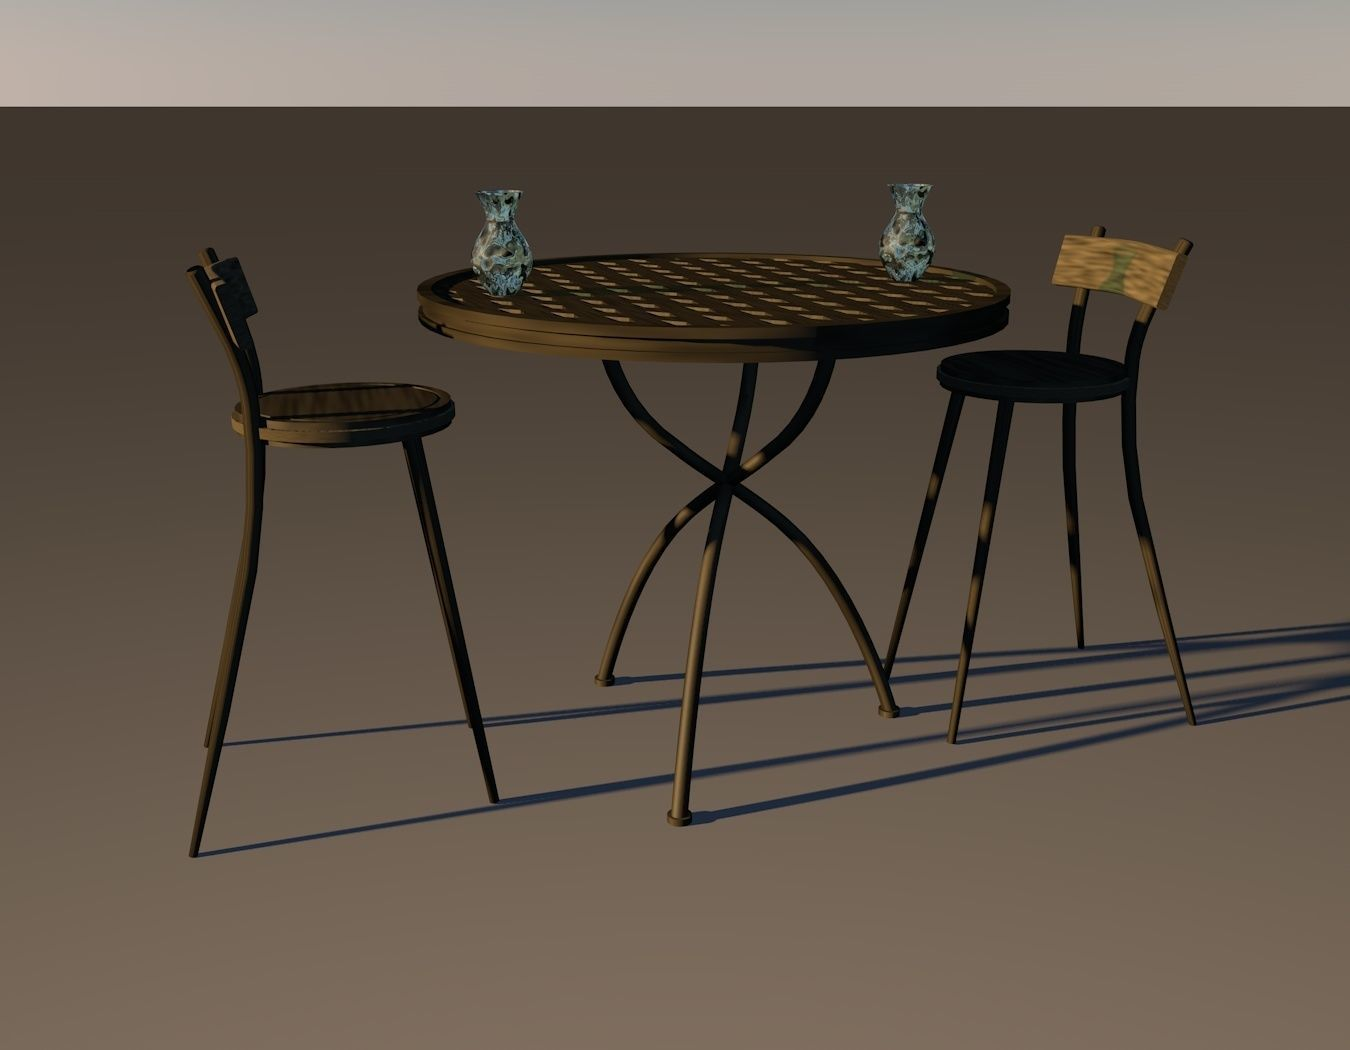 vintage wood high chair walmart evenflo 3d asset mesh wooden table and 1 for outdoors model low poly 3ds